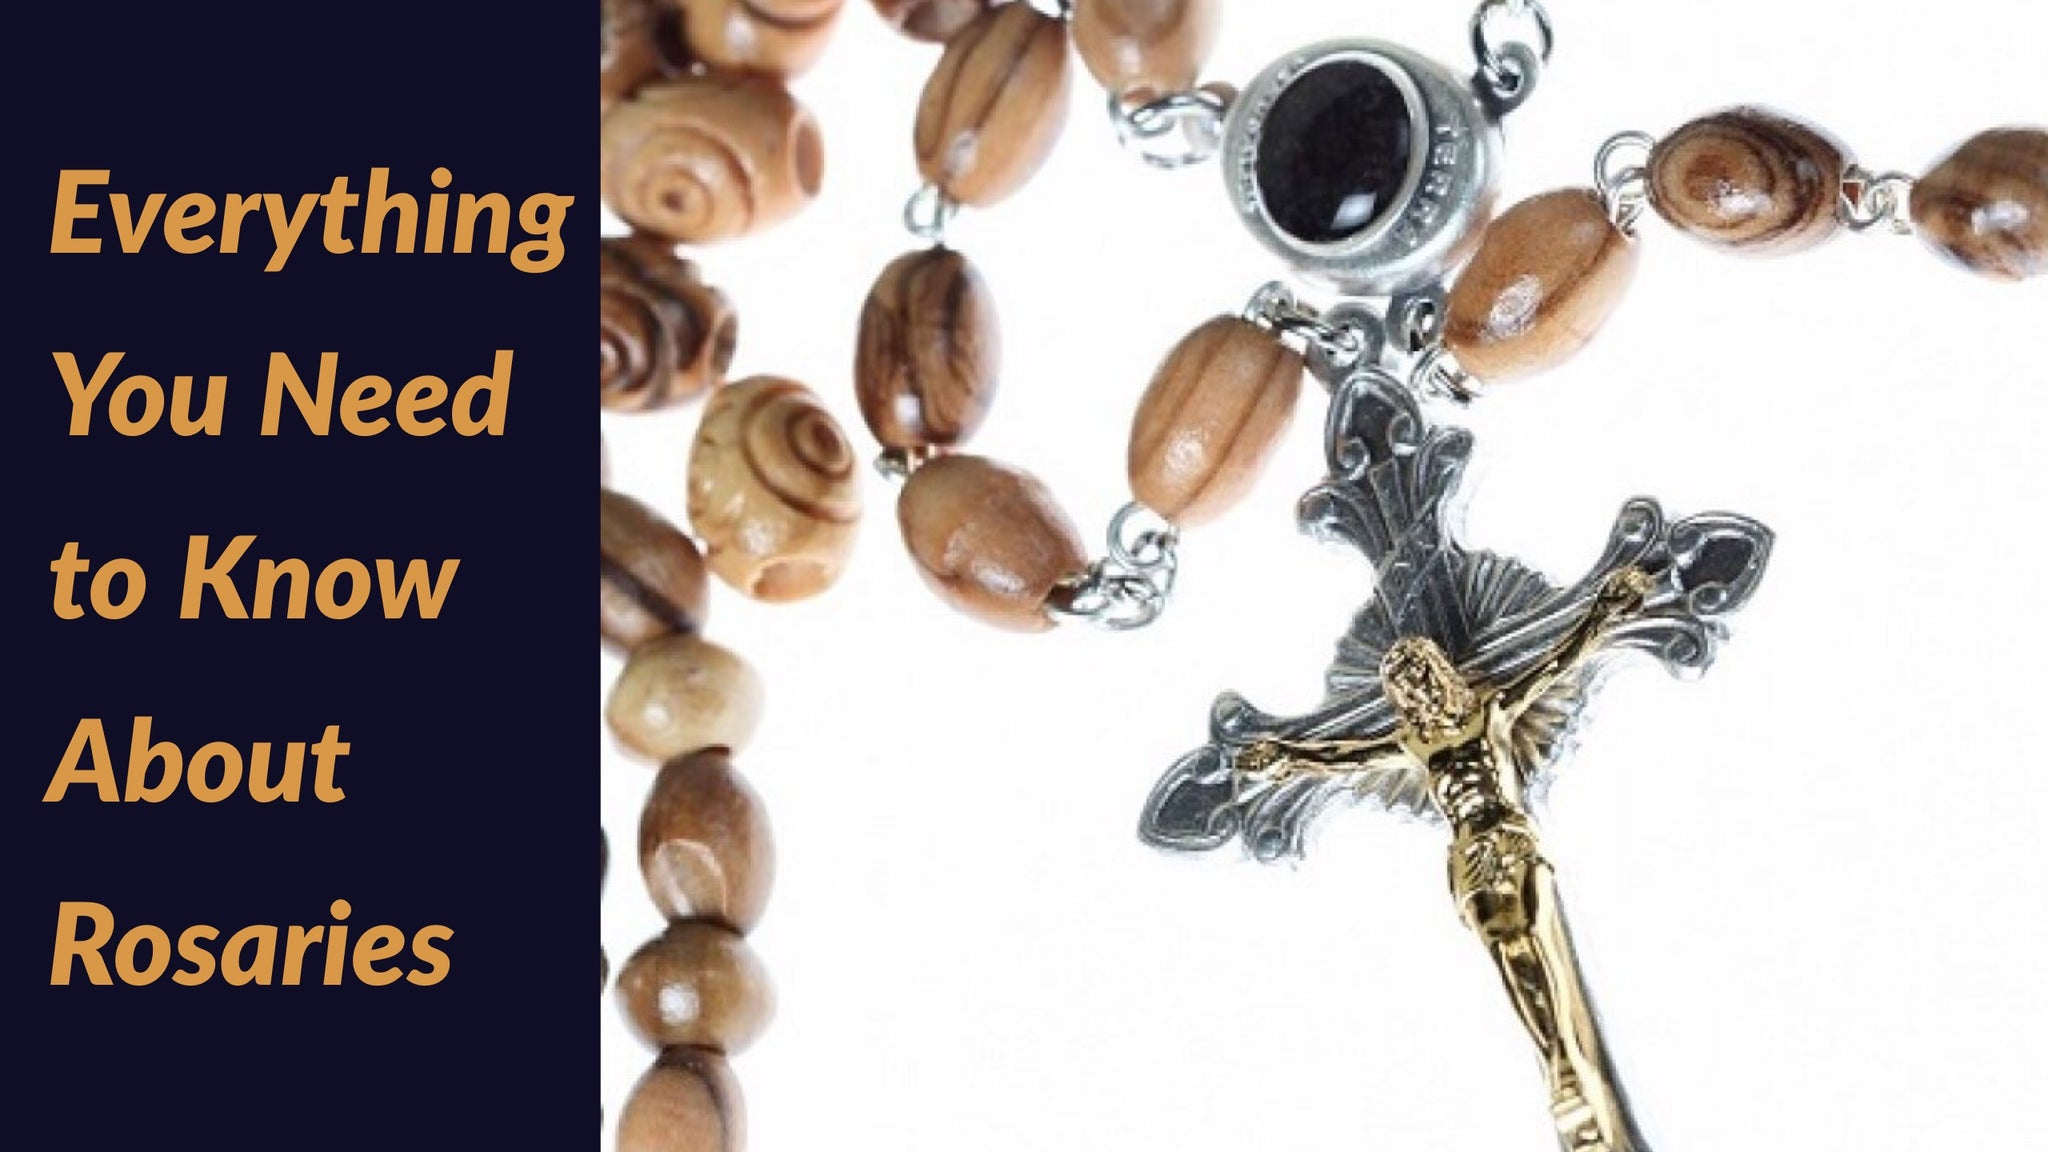 Everything You Need to Know About Rosaries